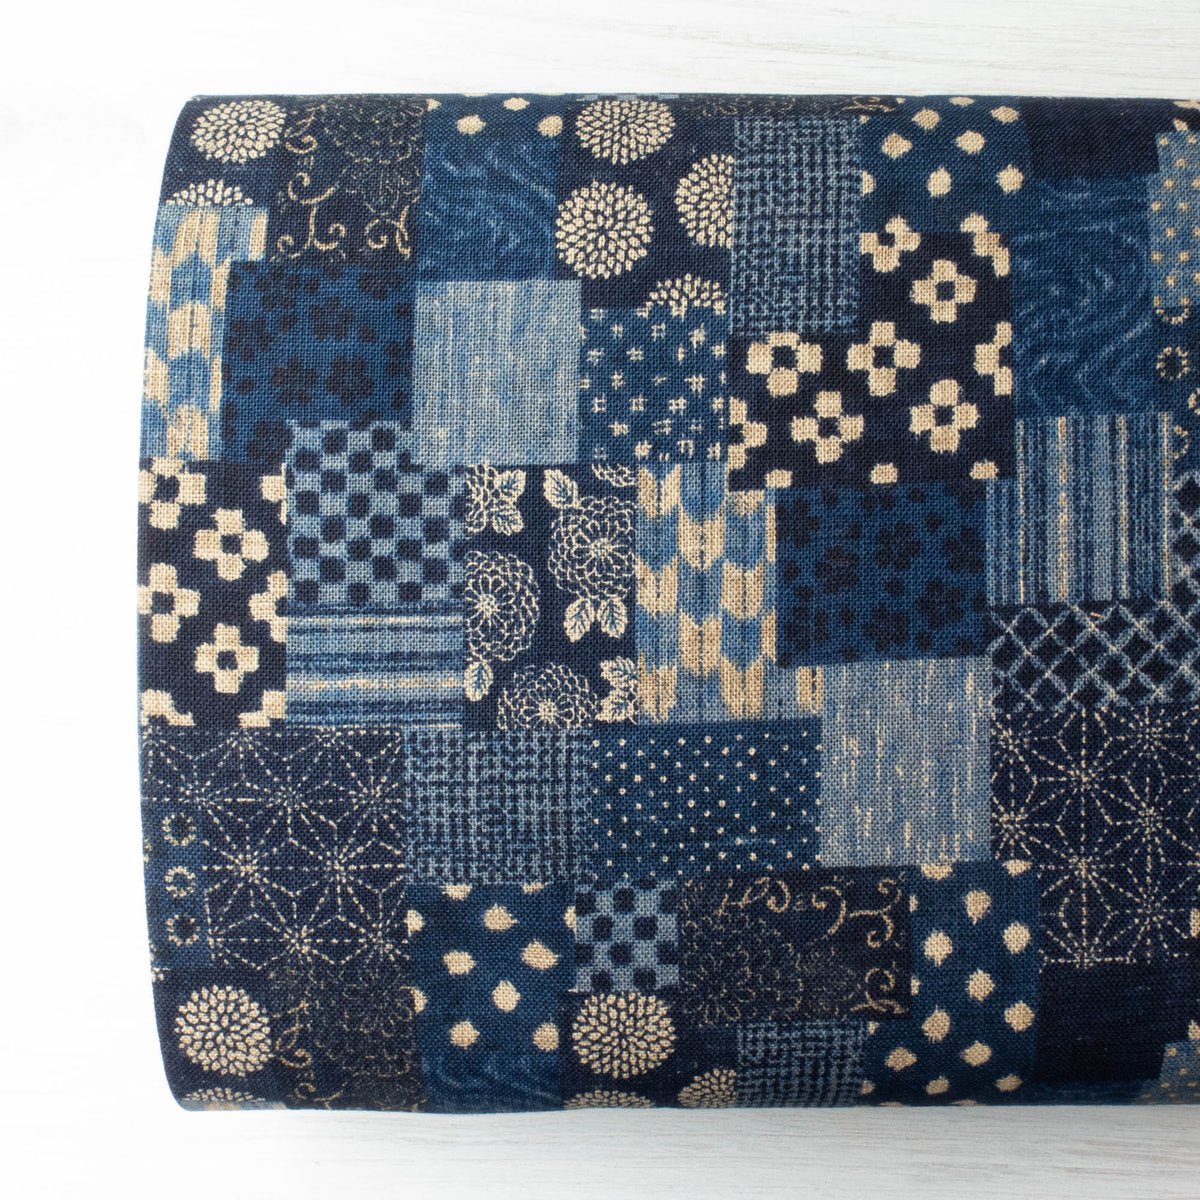 Sevenberry Nara Homespun :: Boro Panel Navy Fabric - Snuggly Monkey